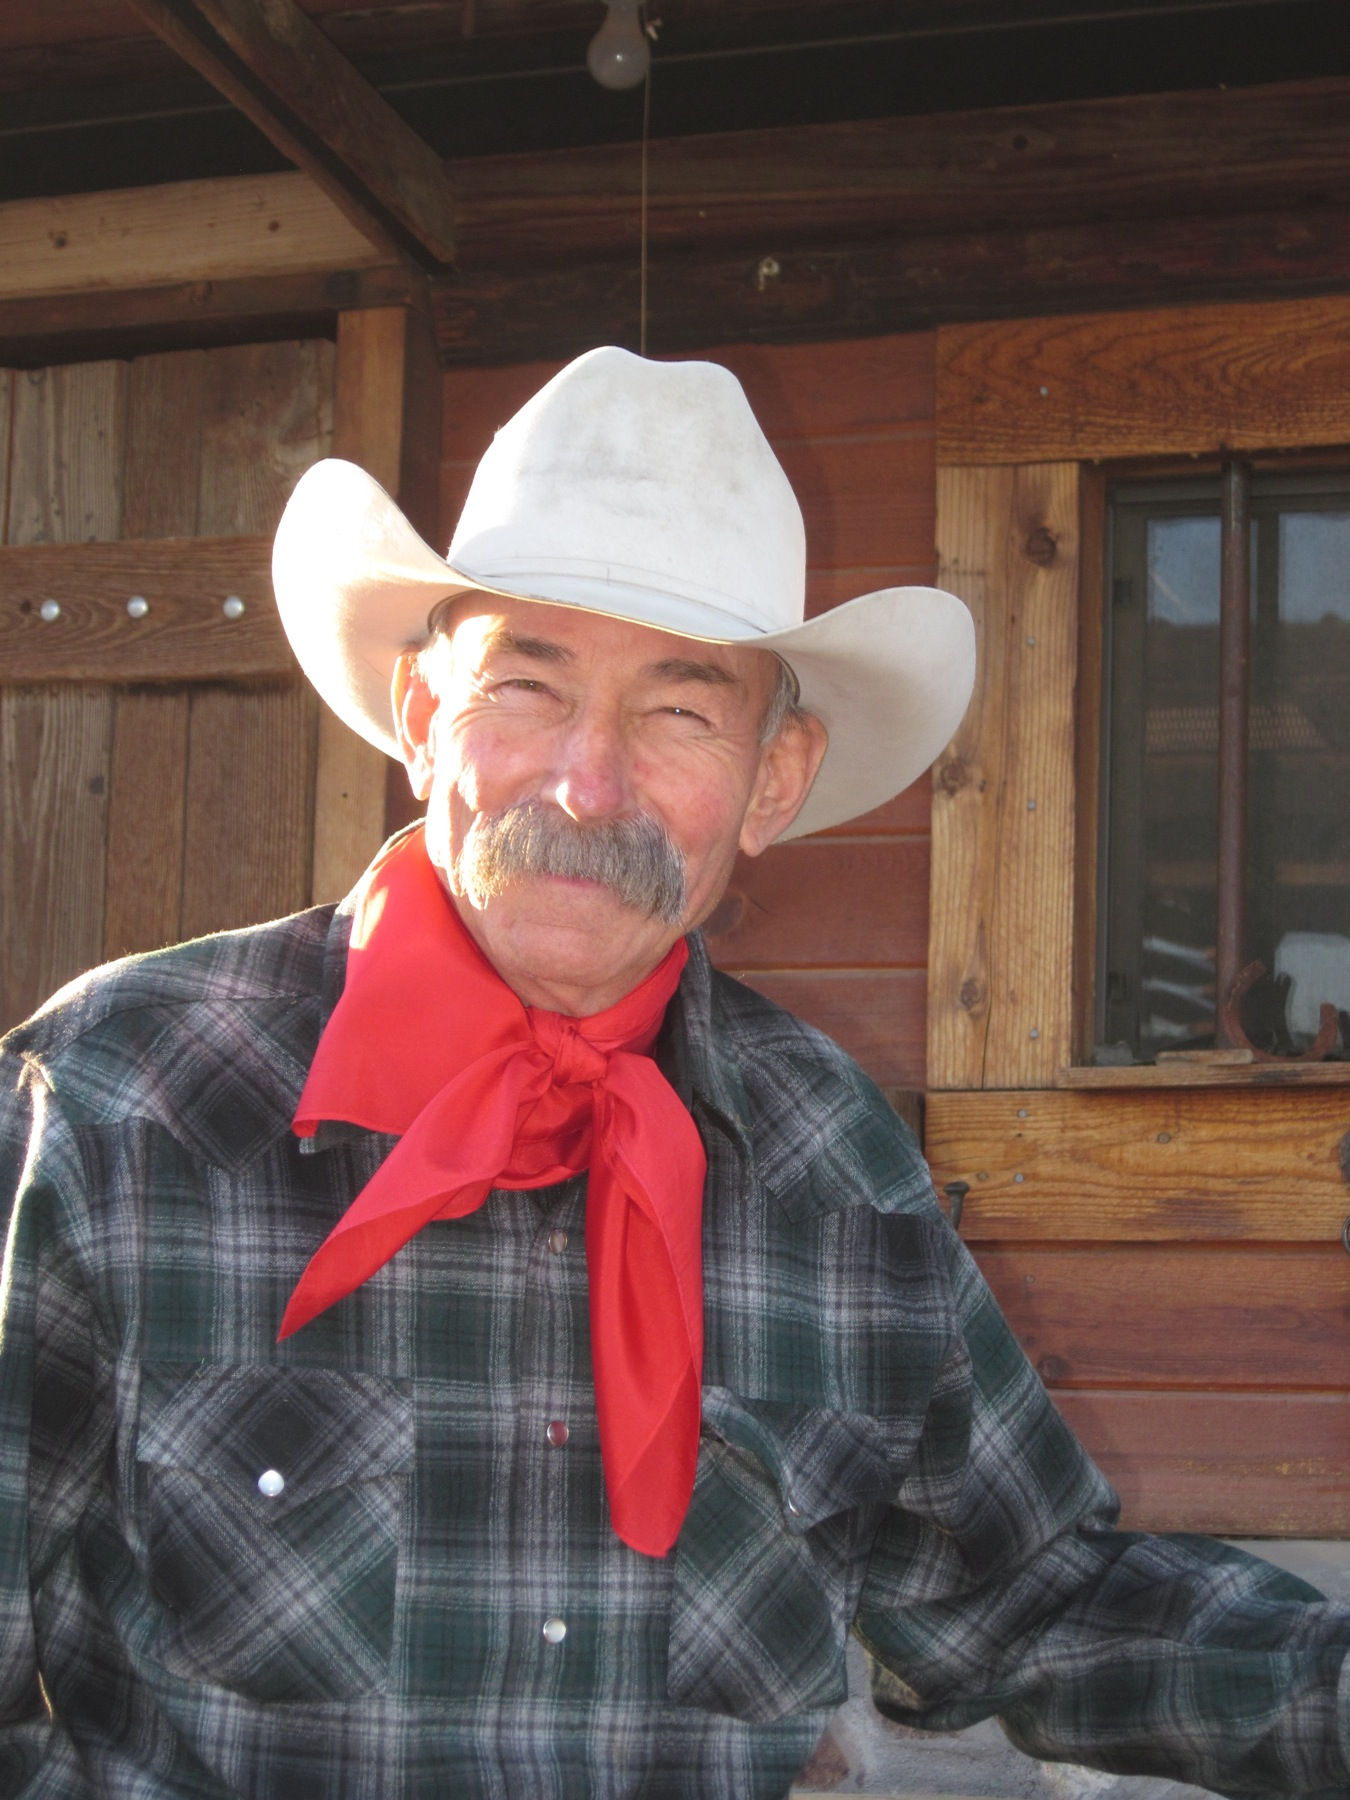 Baxter Black Poems Strike a Chord With Homesteaders and Cowboys Alike